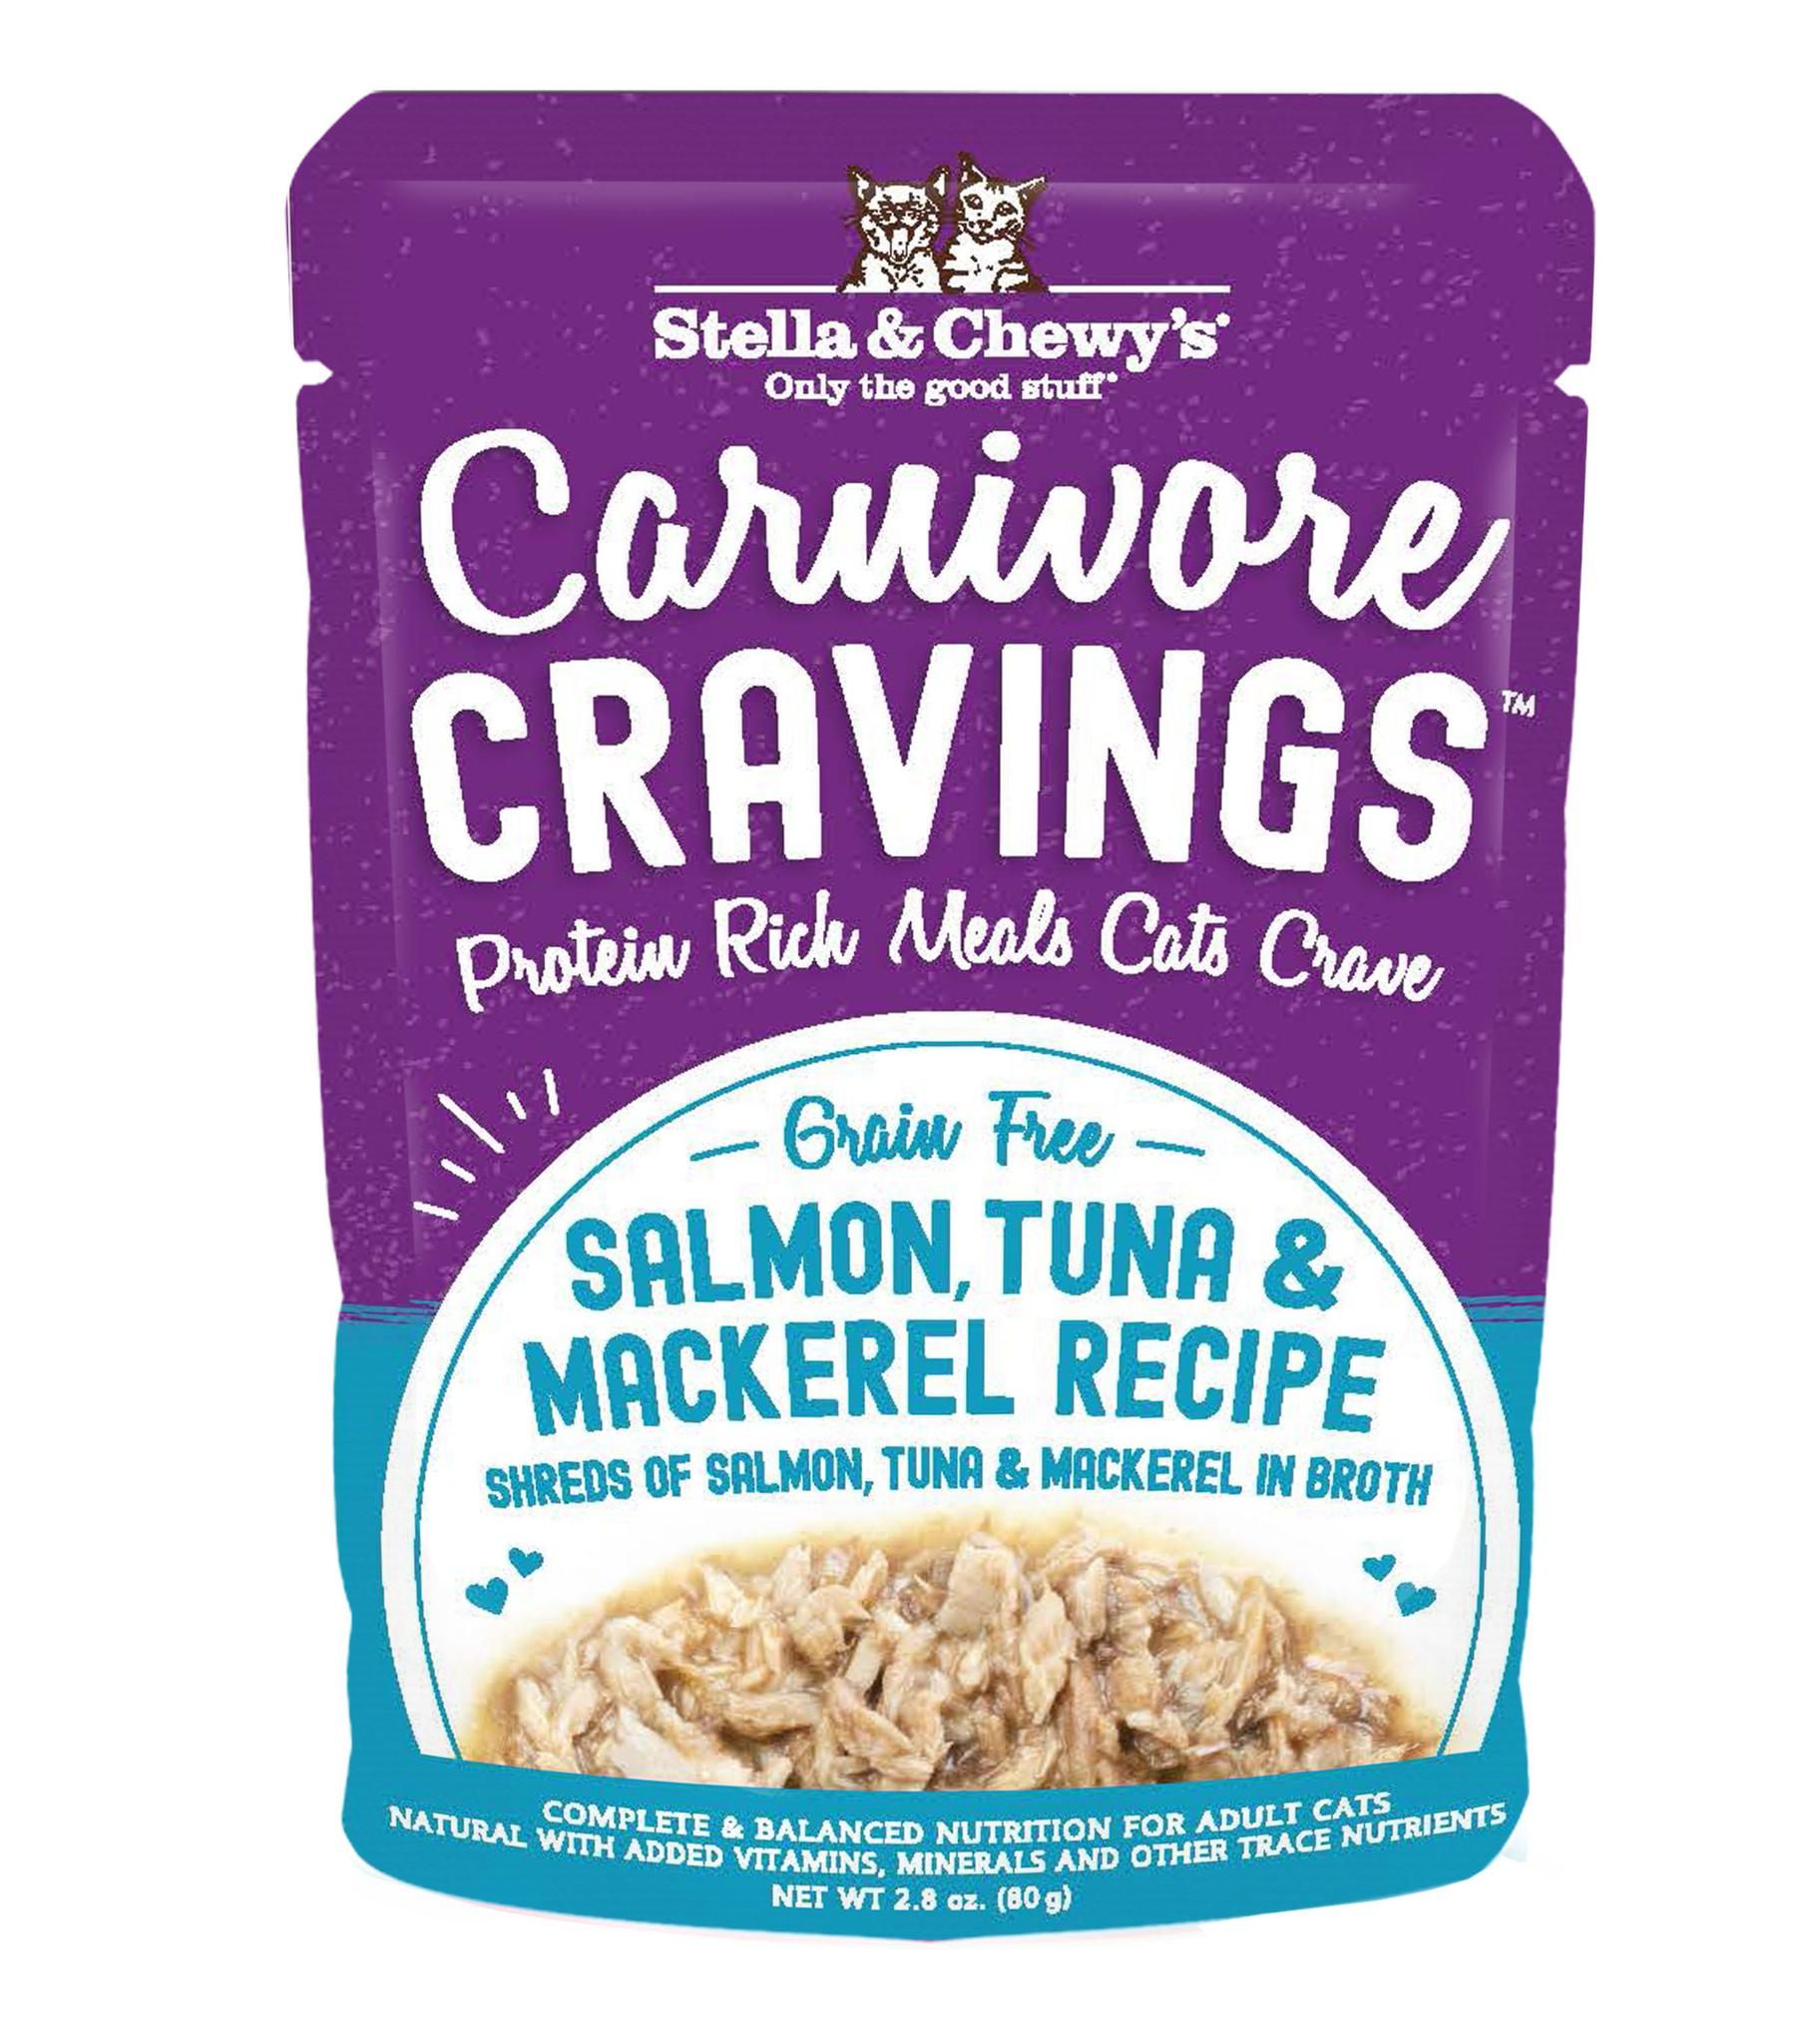 Stella & Chewy's Carnivore Cravings 2.8oz